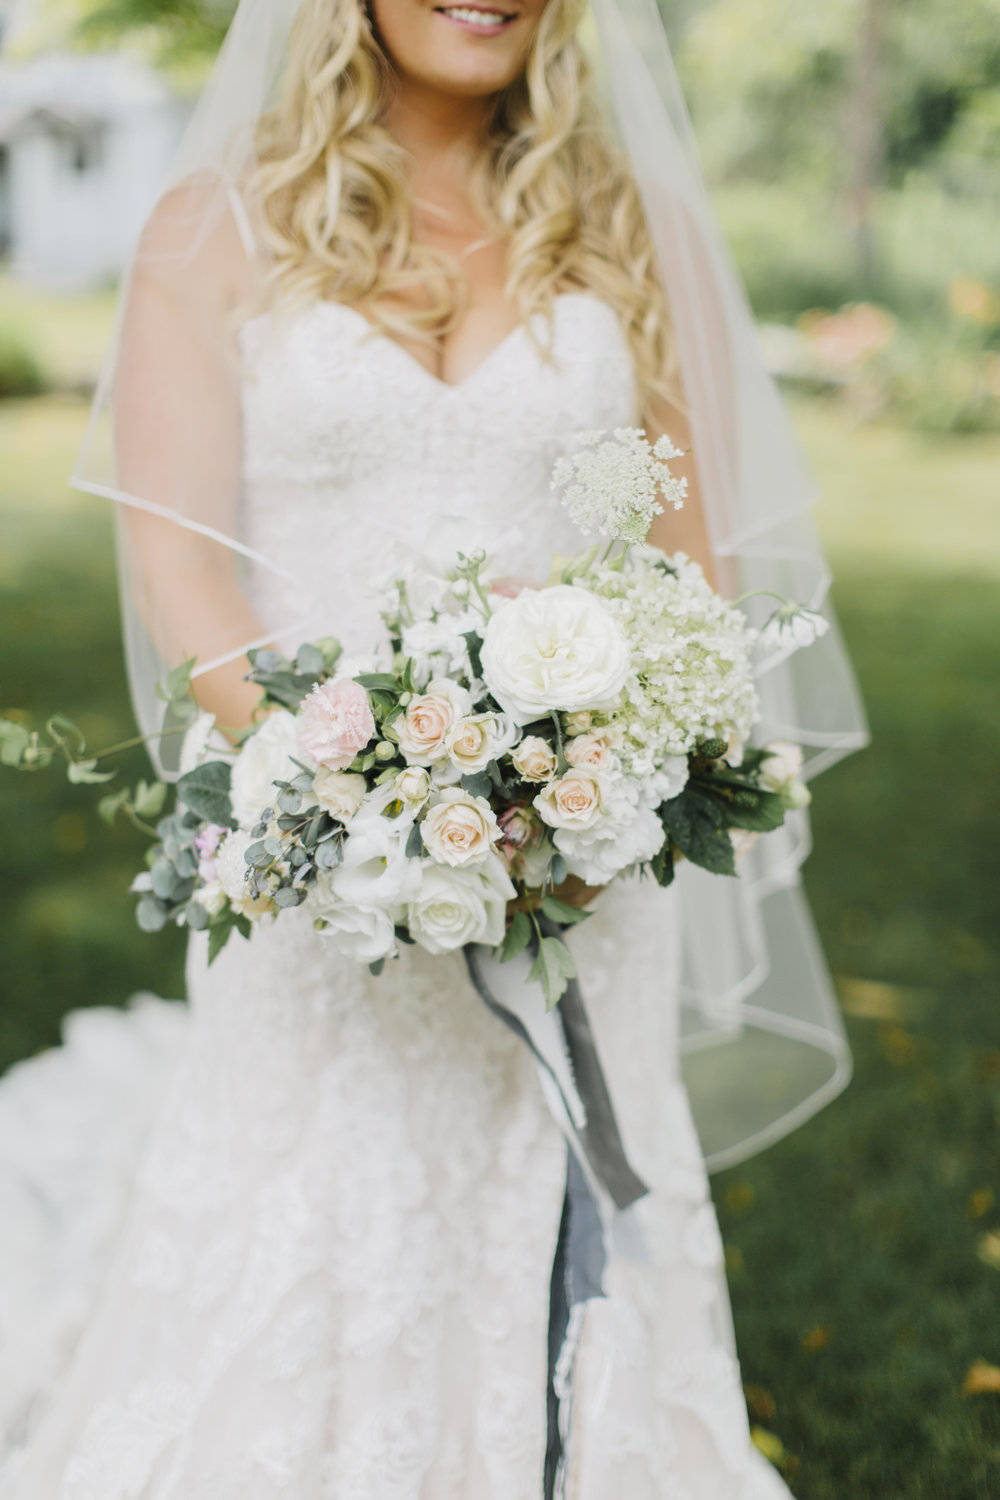 Watershed-Floral-Live-Well-Farm-Maine-Summer-Bridal-Bouquet-1.jpg